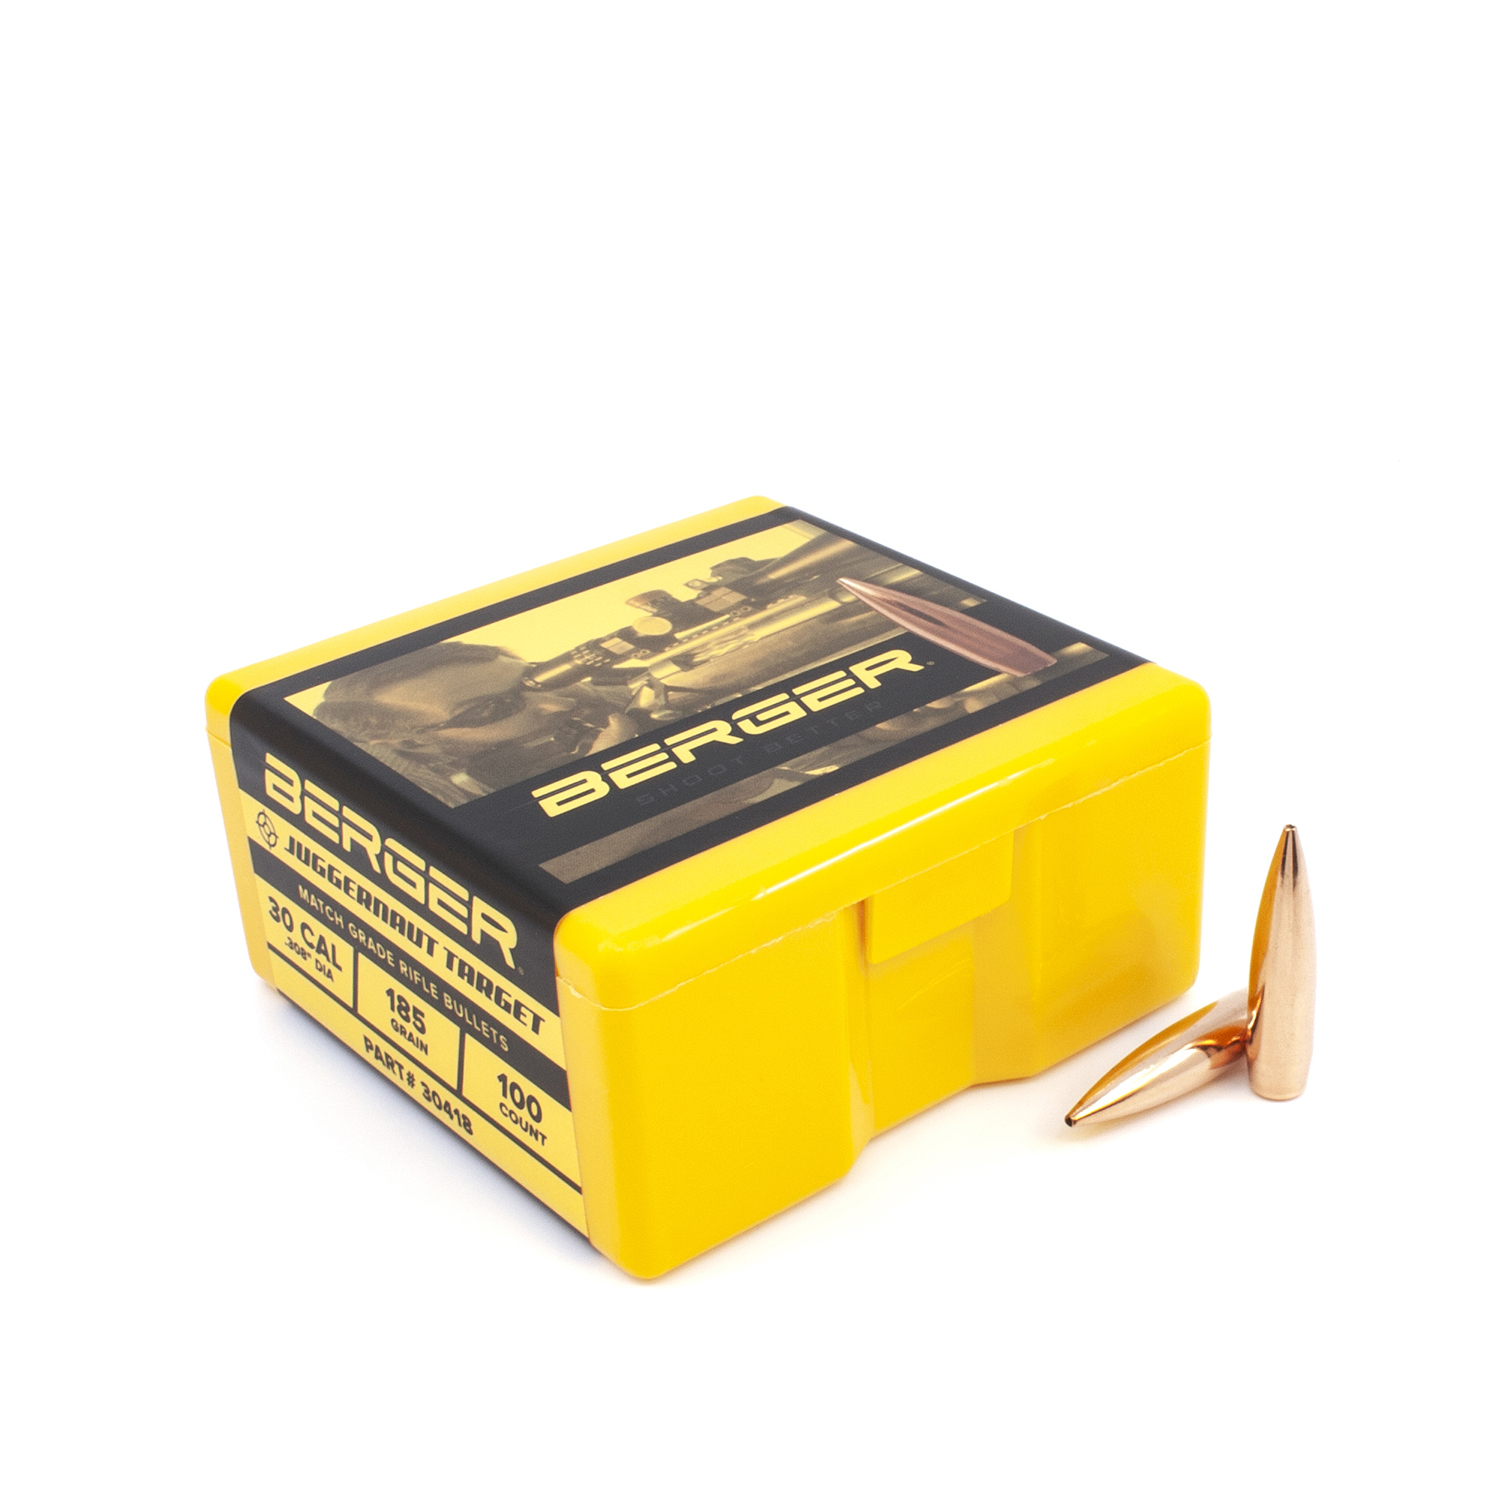 Berger Bullets - .30 cal, 185 gr. Juggernaut Target - Box of 100